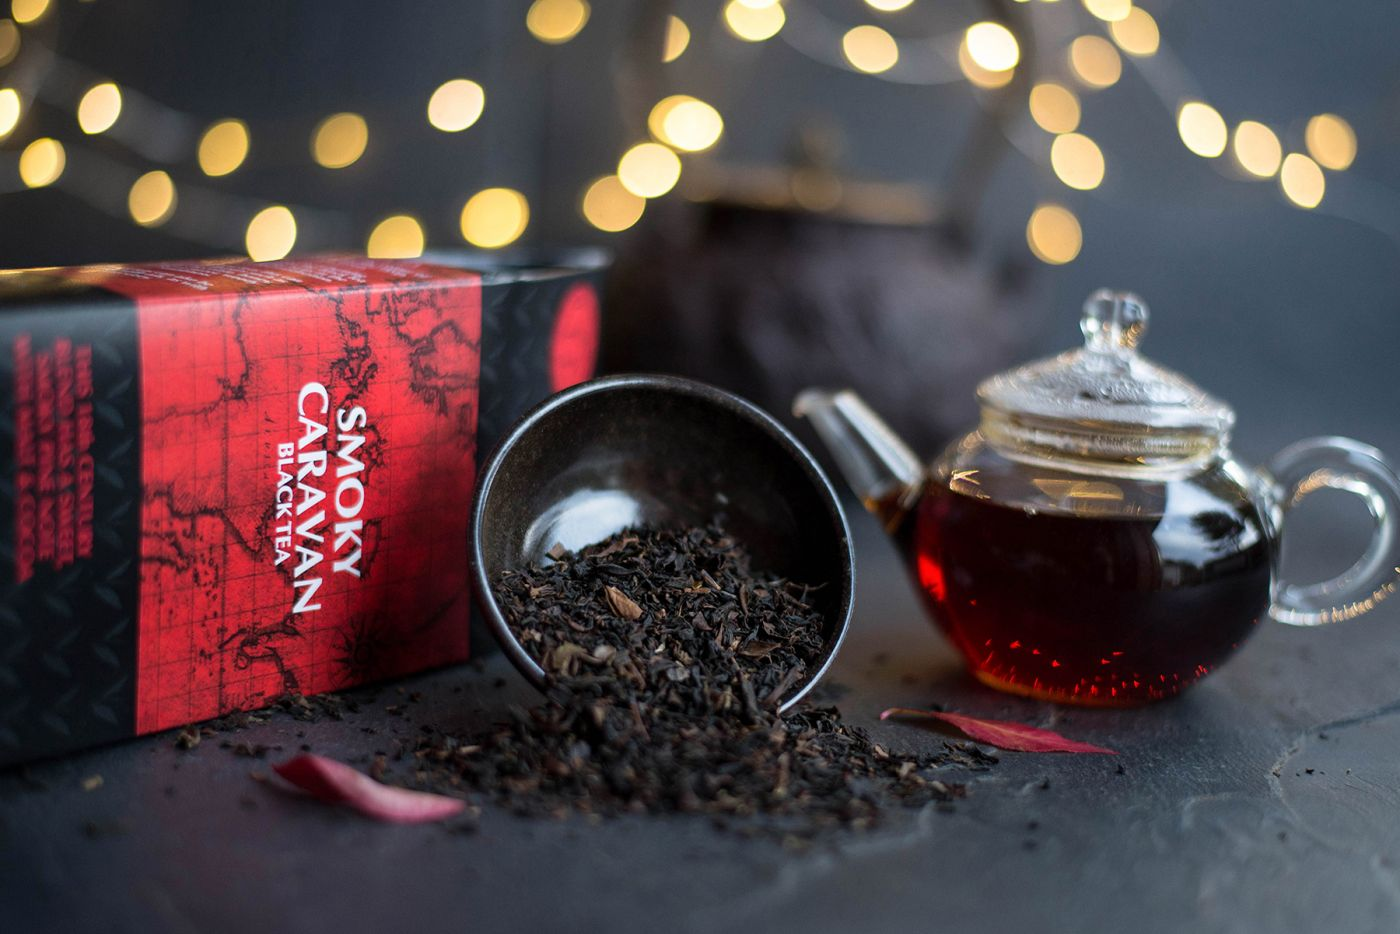 Smoky Caravan Black Tea